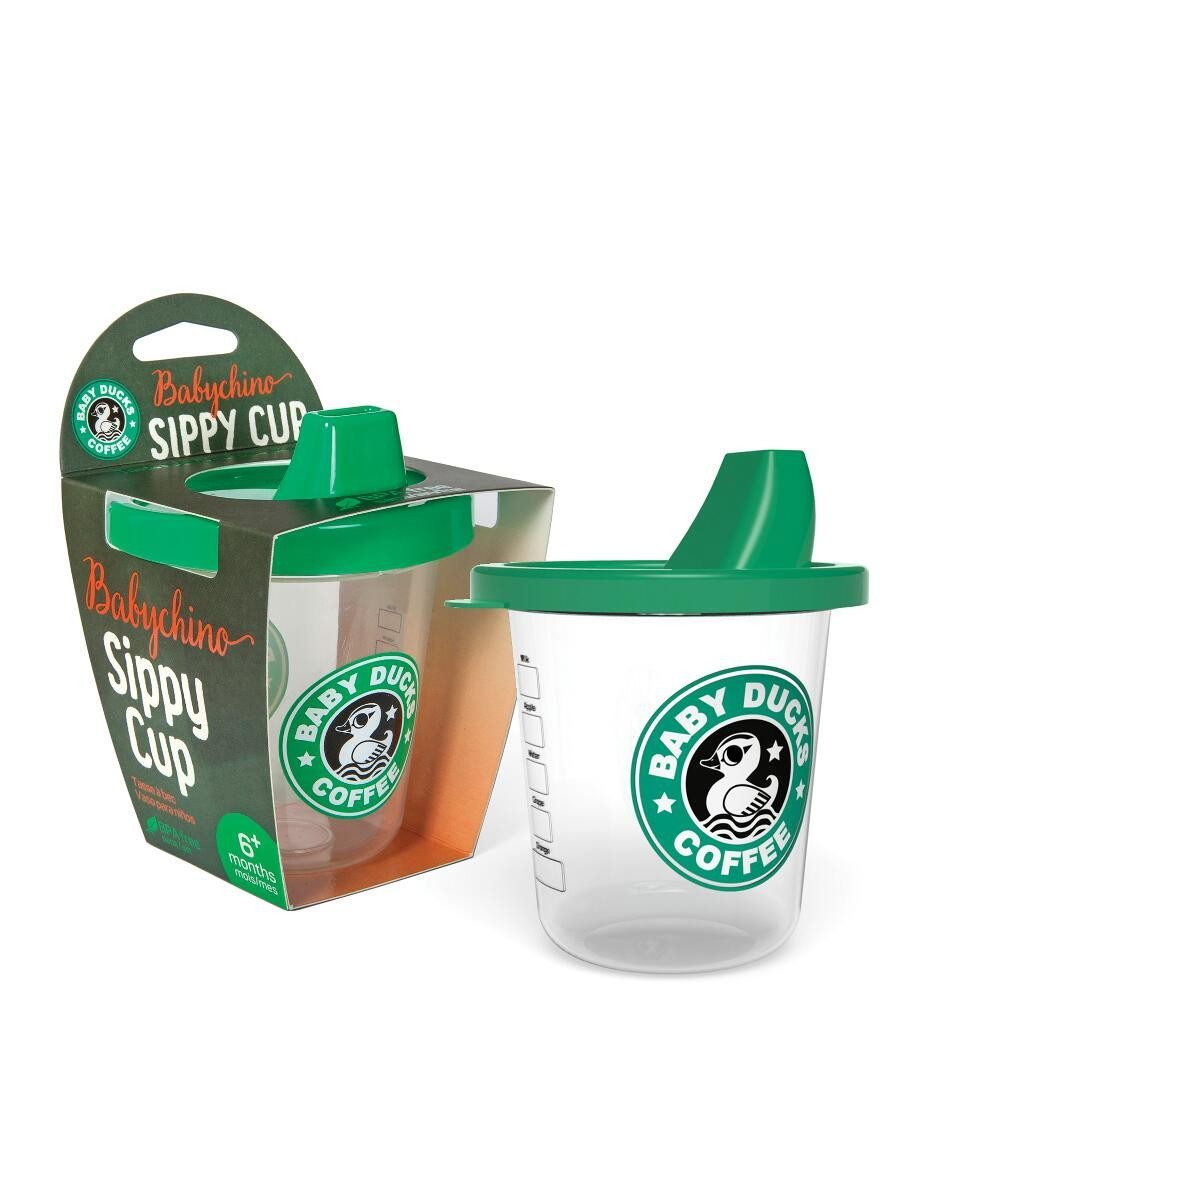 Baby Duck Sippy Cup babychino cup box